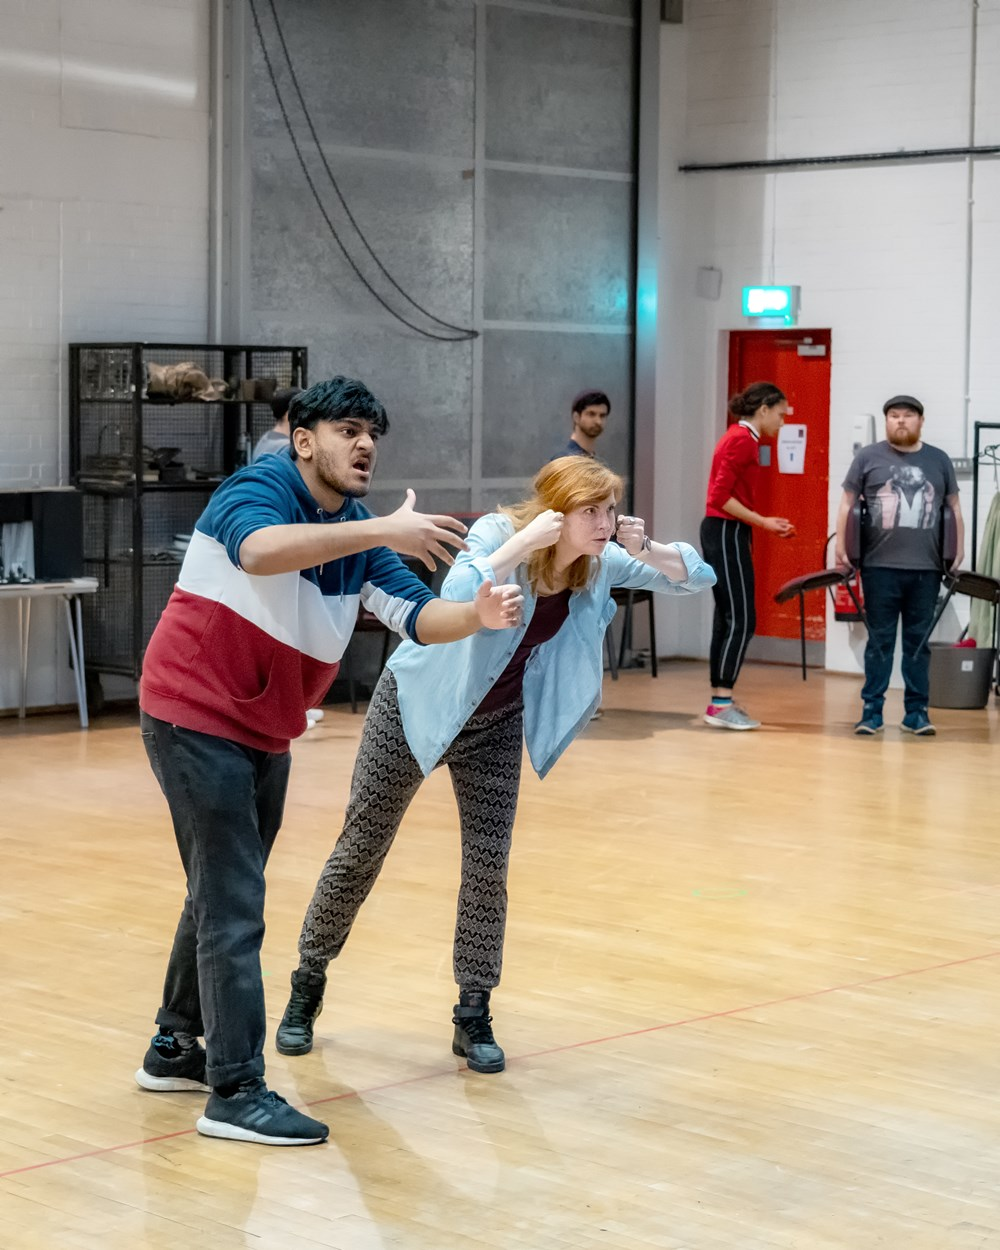 Nadeem Islam, Clare-Louise English, Mitesh Soni, Stephen Collins and Georgia Jackson in Oliver Twist Rehearsals